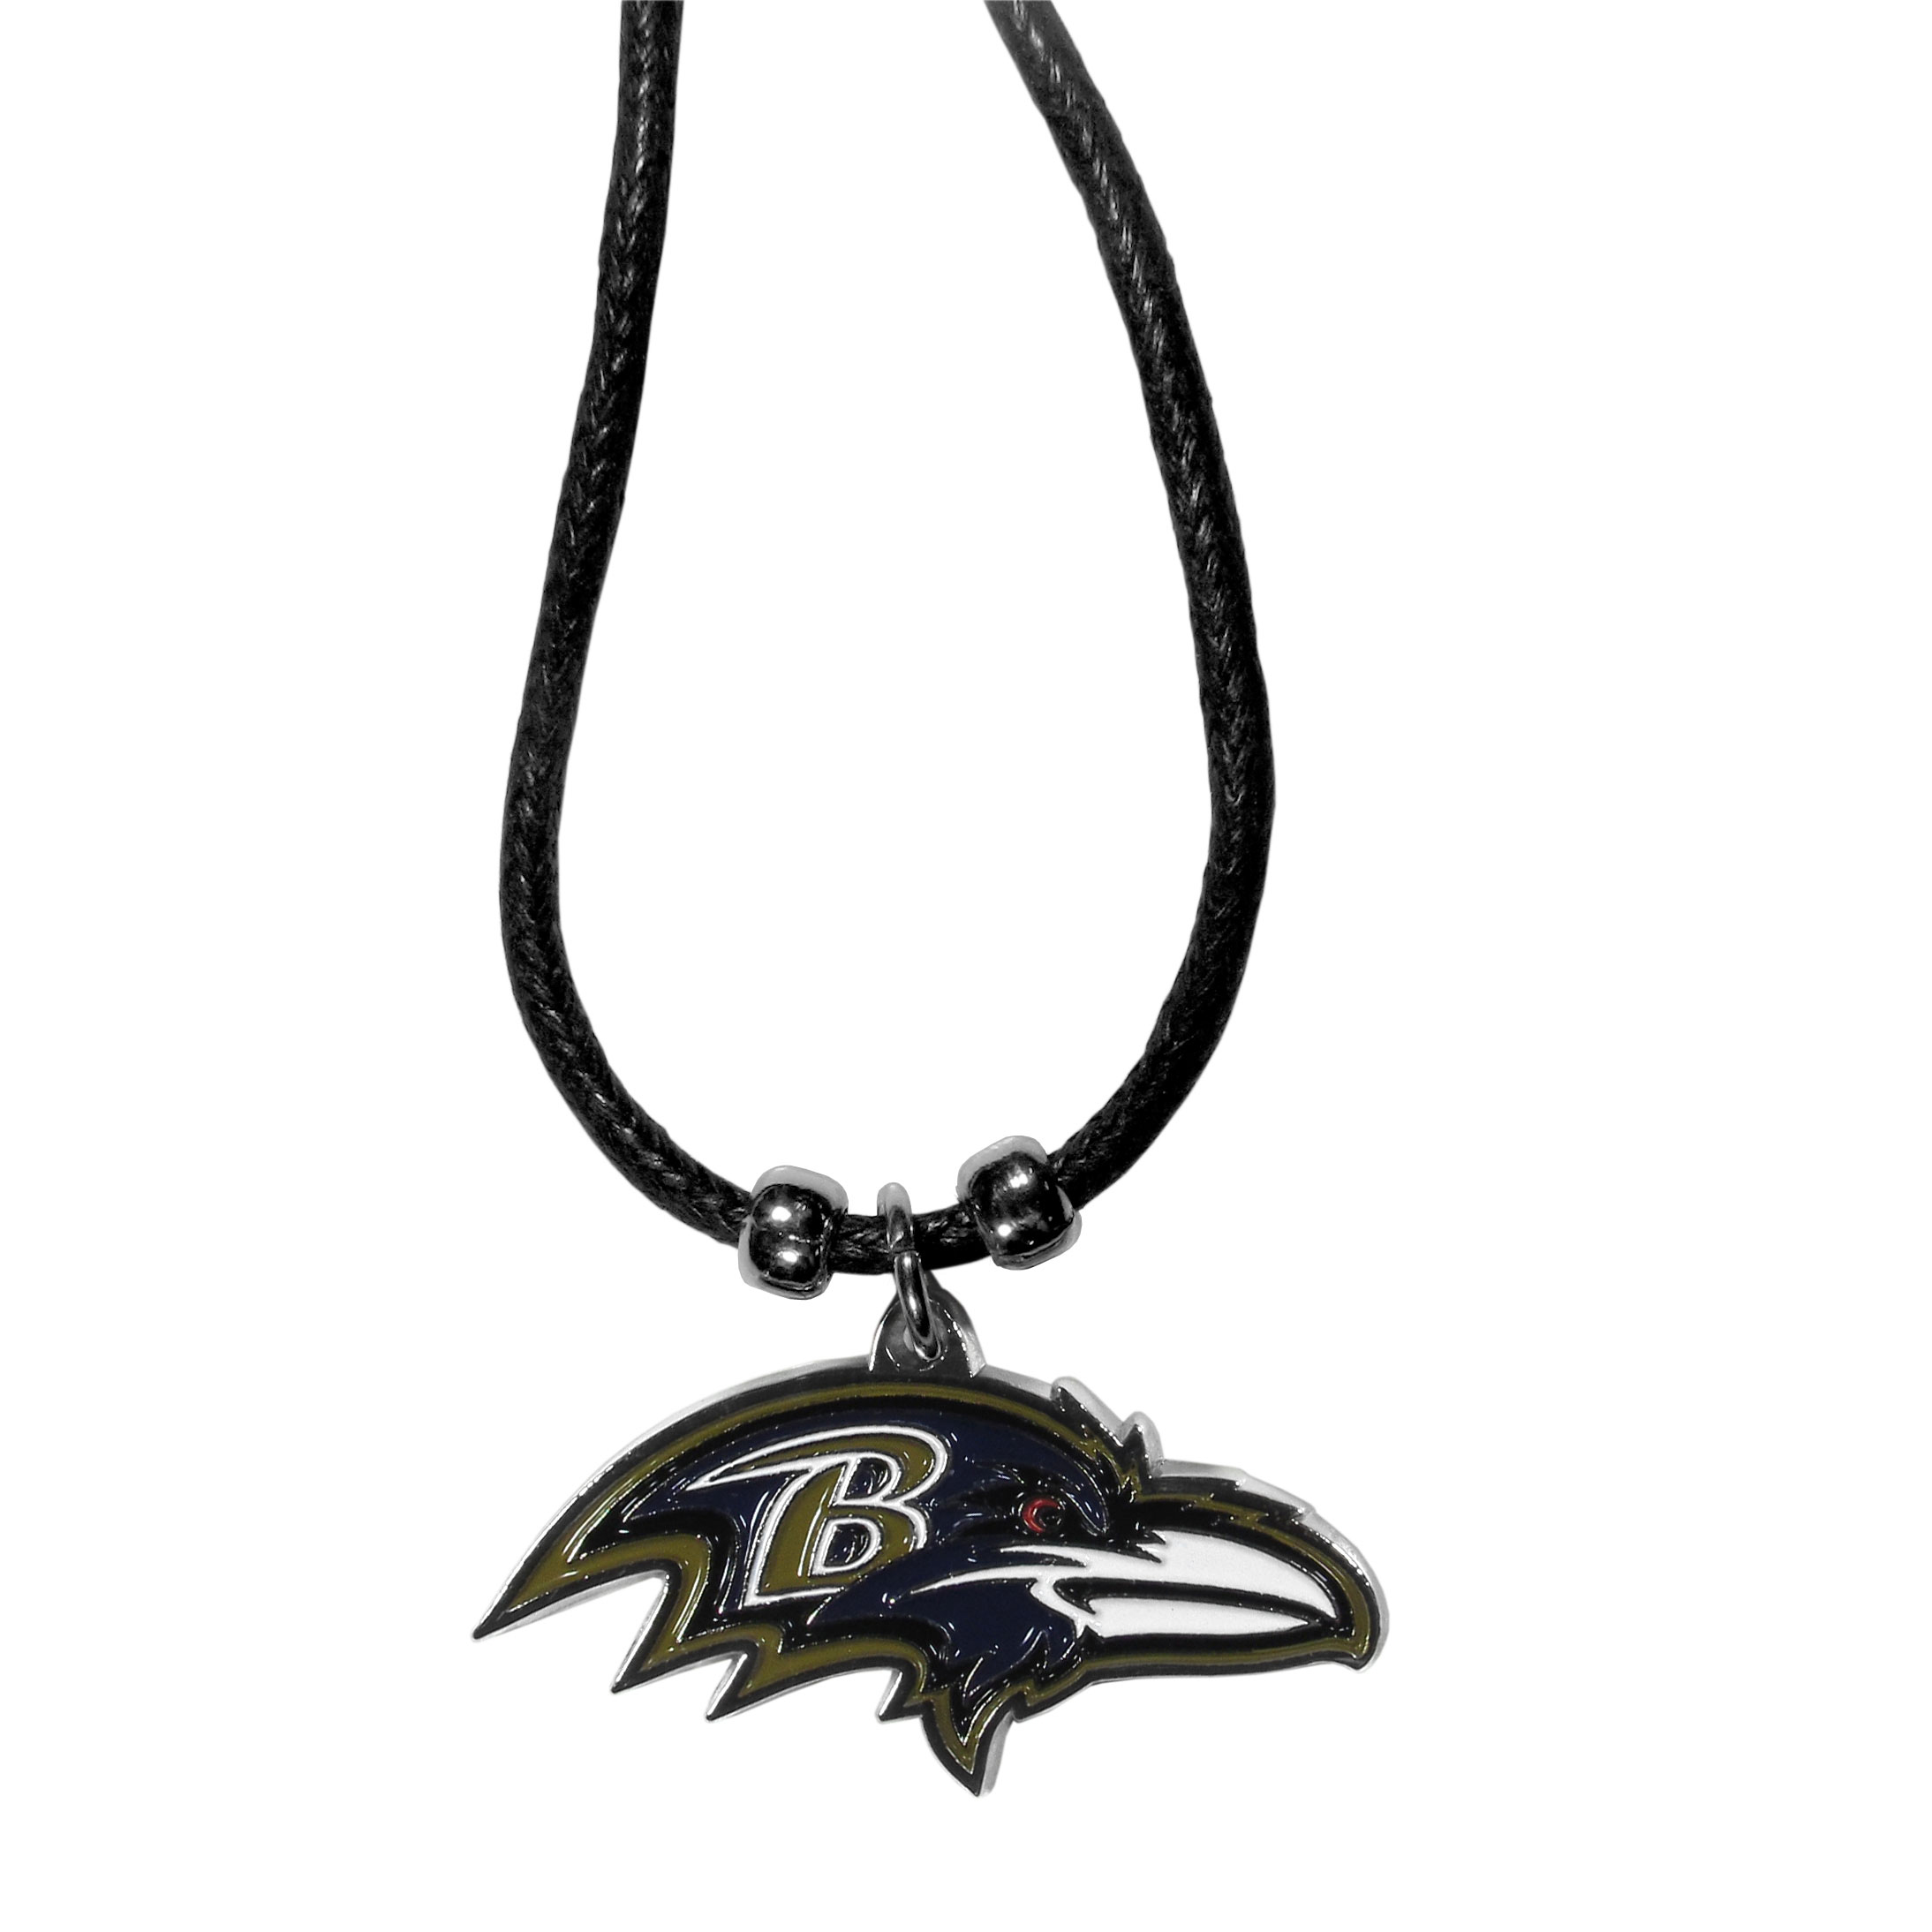 Baltimore Ravens Cord Necklace - This classic style cotton cord necklace features an extra large Baltimore Ravens pendant on a 21 inch cord.